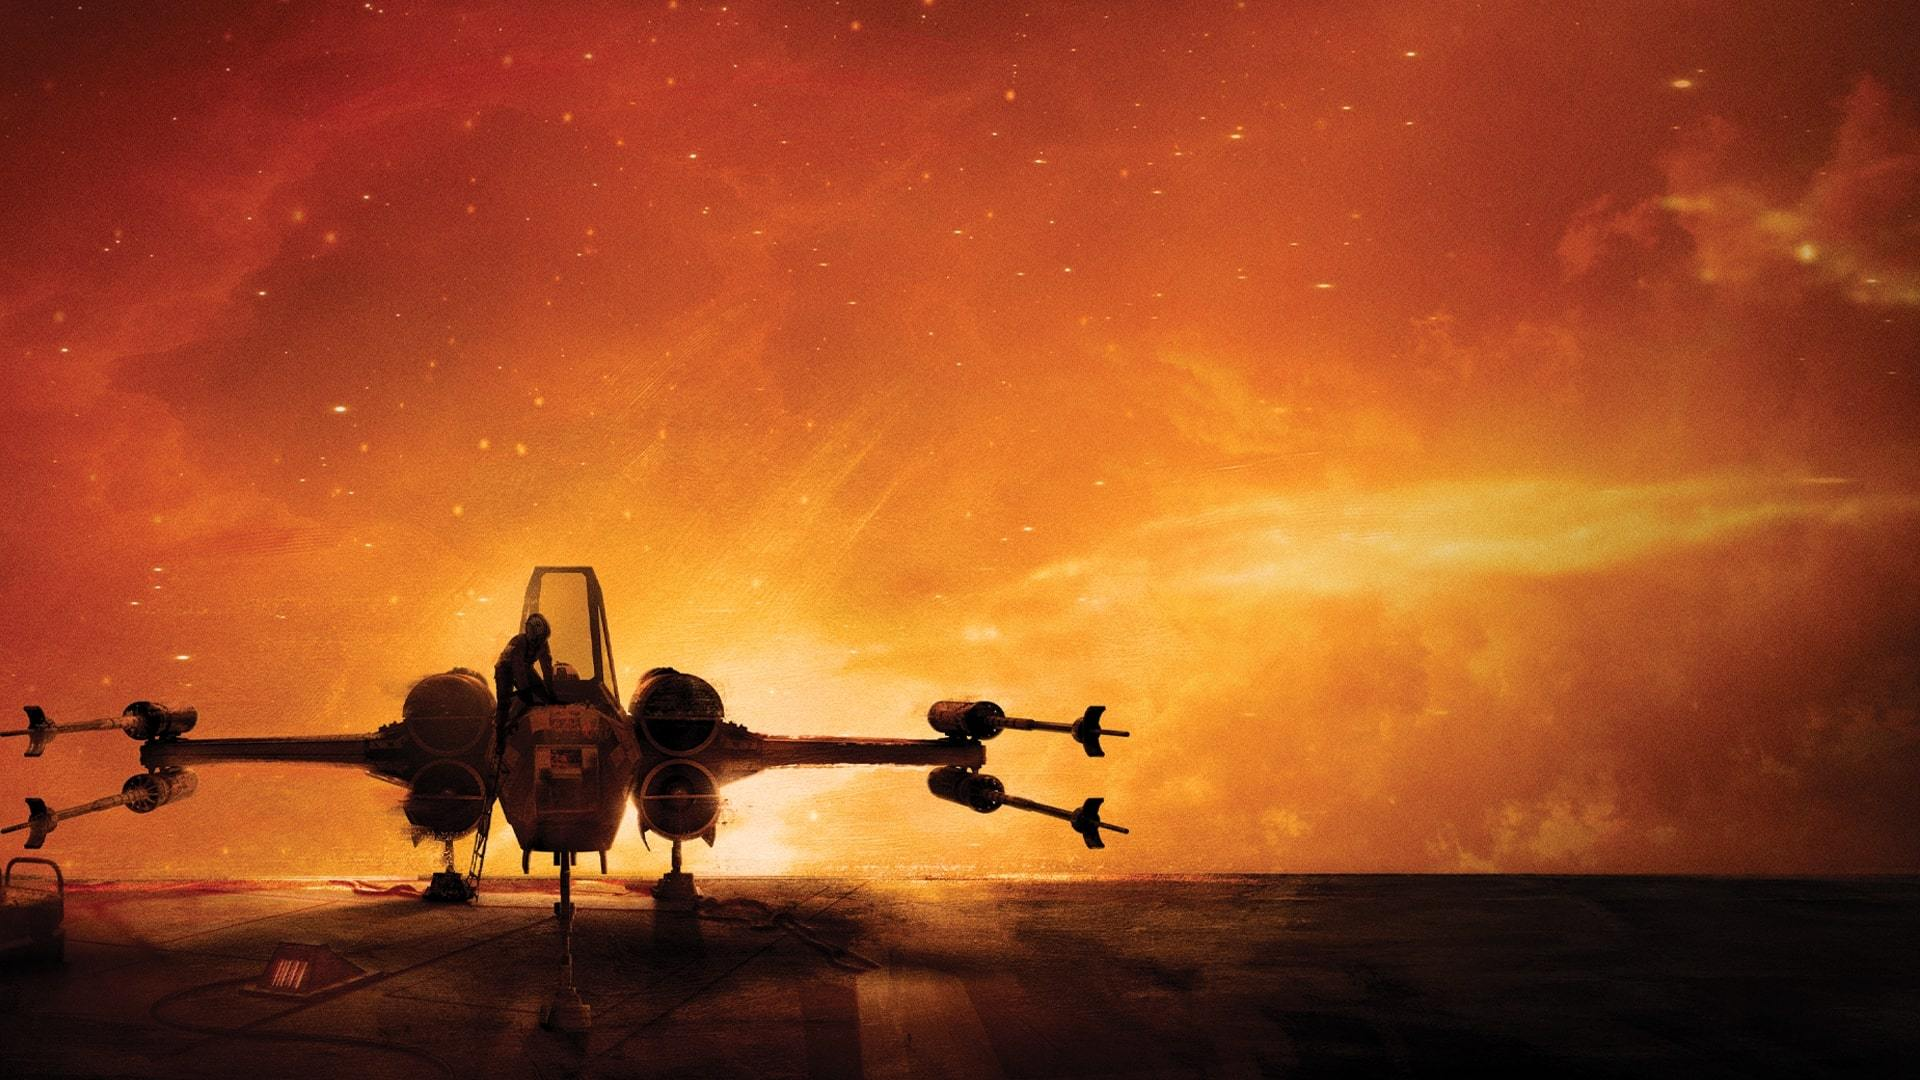 star wars squadrons desktop wallpaper 72651